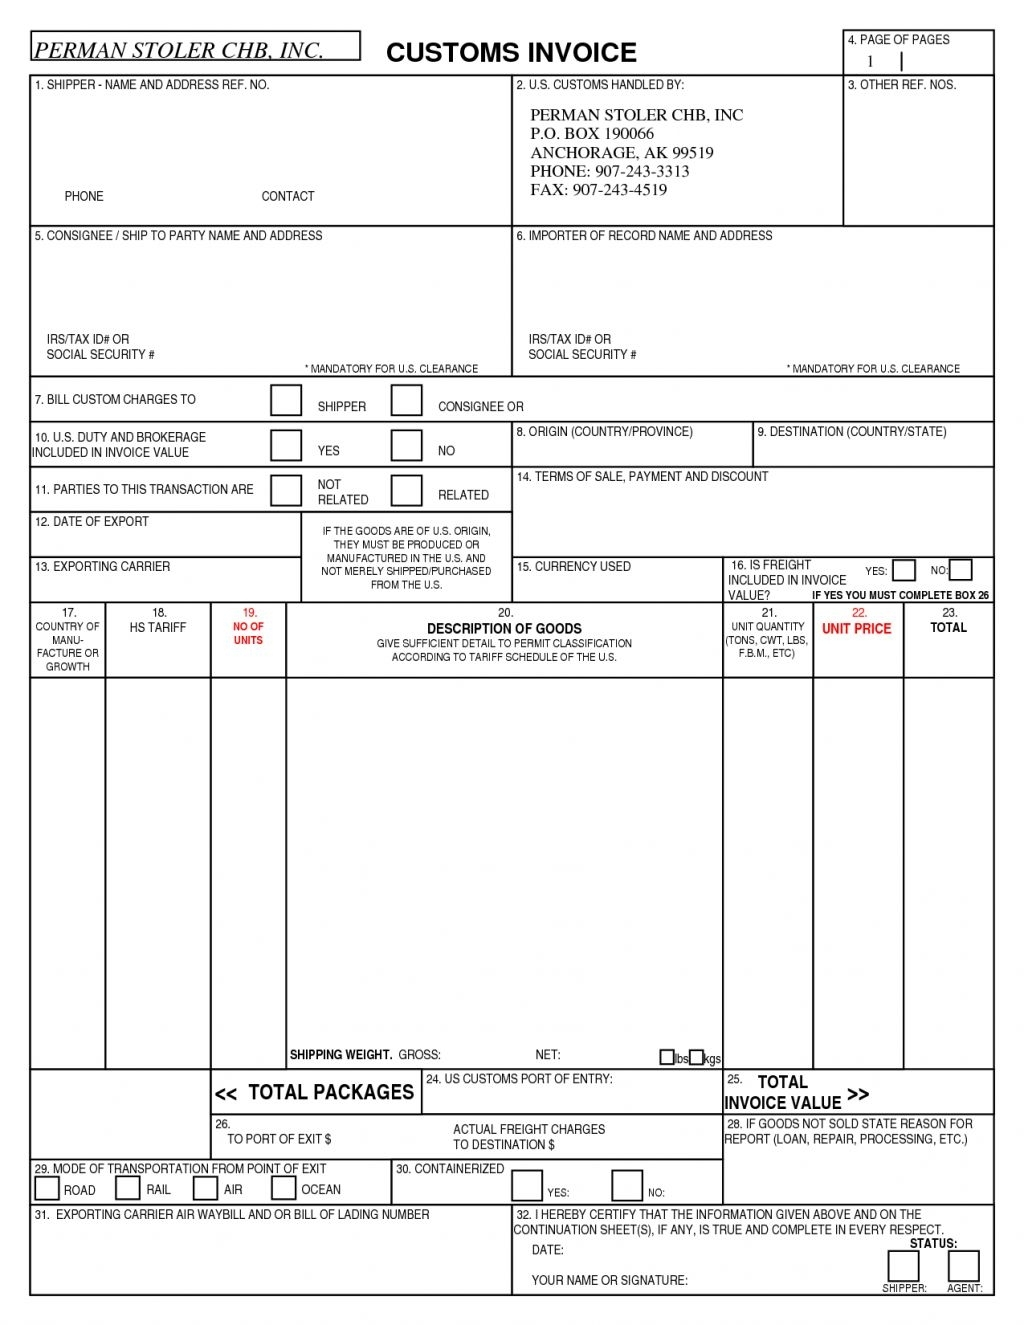 us customs invoice requirements commercial invoice templates sehadetvakti com canada customs form 1024 X 1325